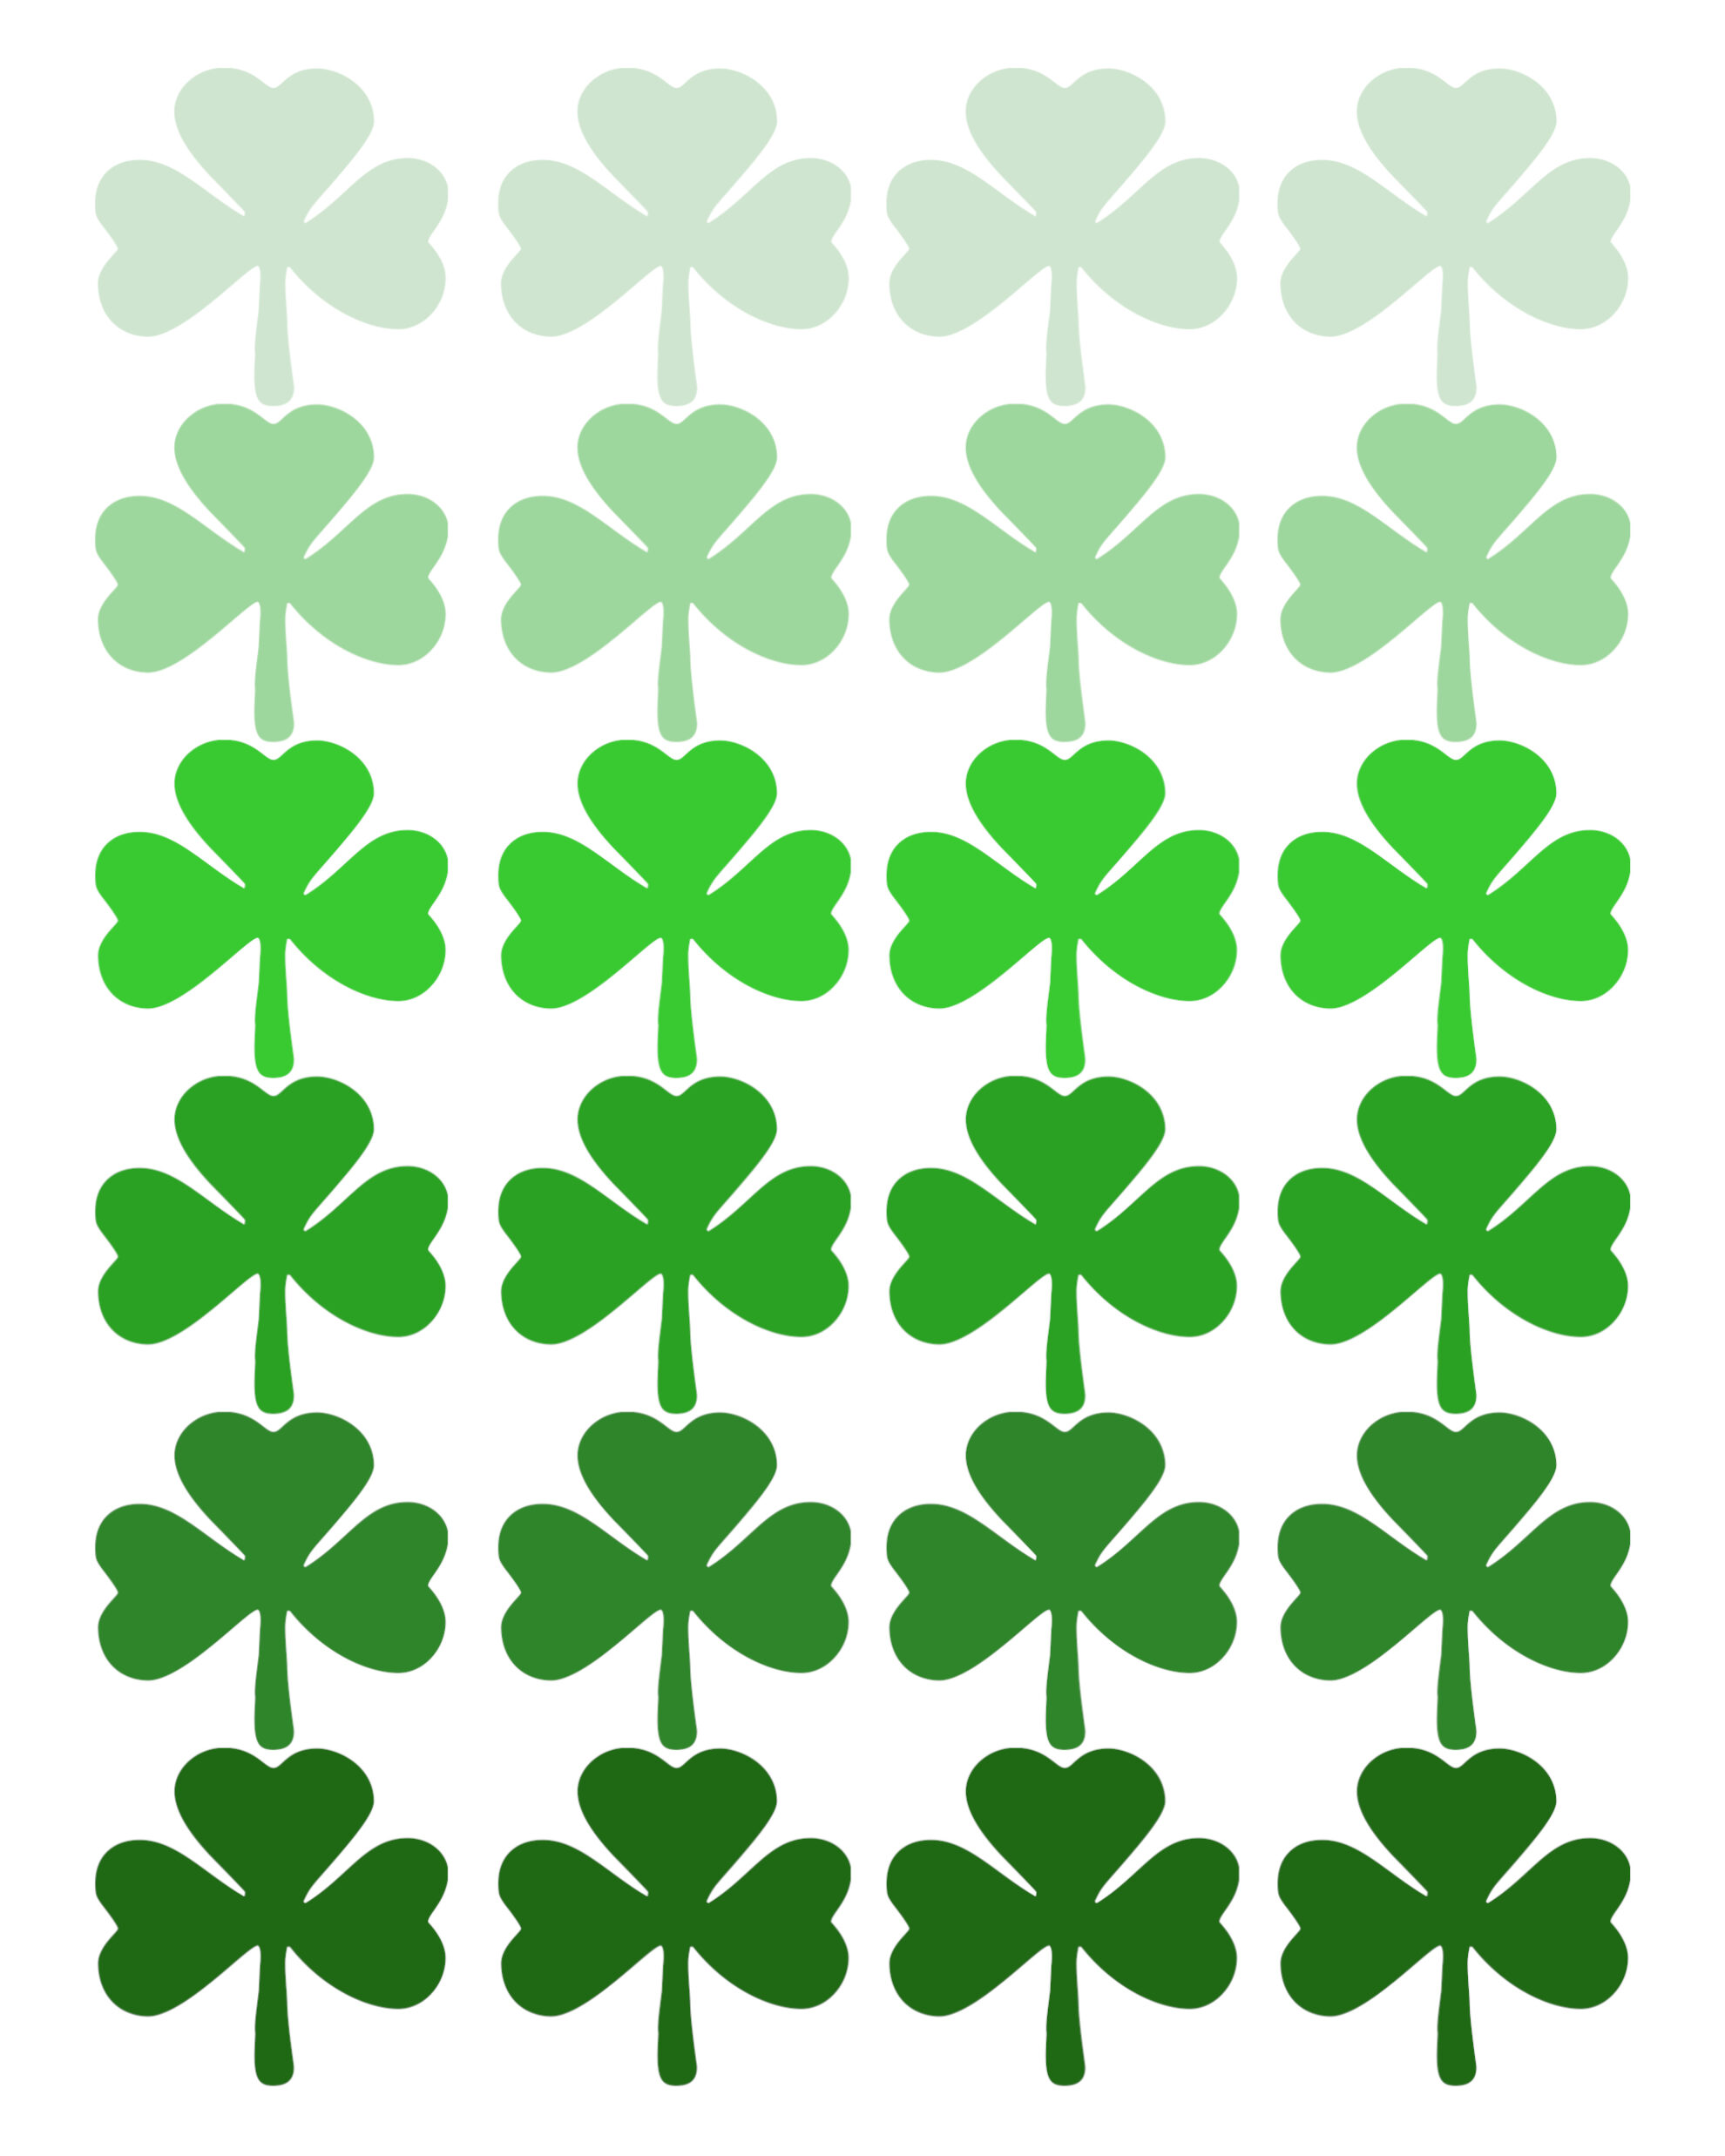 Refreshing image for st patrick's day clover printable